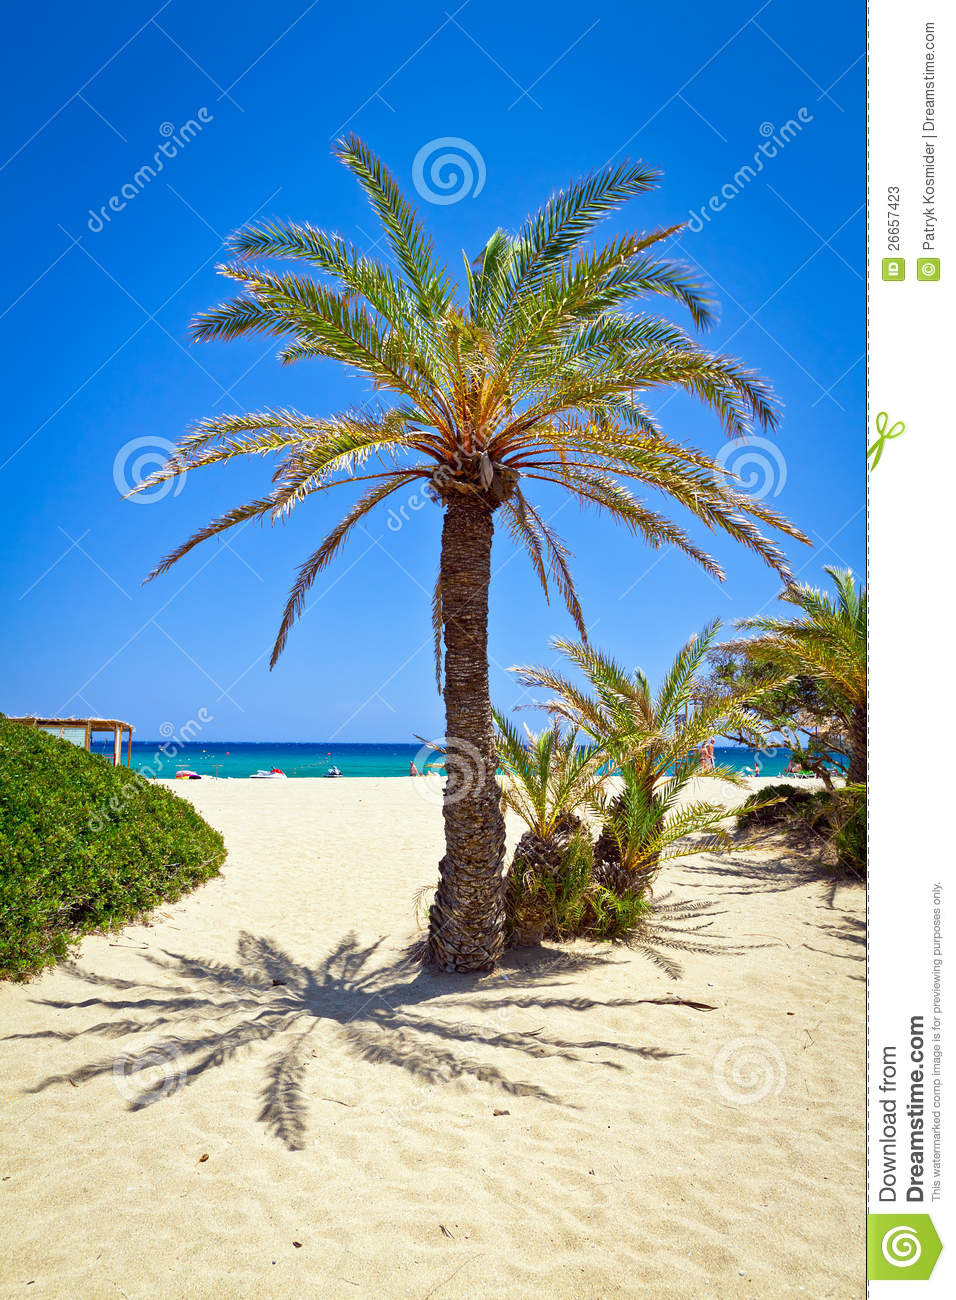 cretan date palm tree on idyllic vai beach stock photos free beach clipart png free beach clipart with hammock